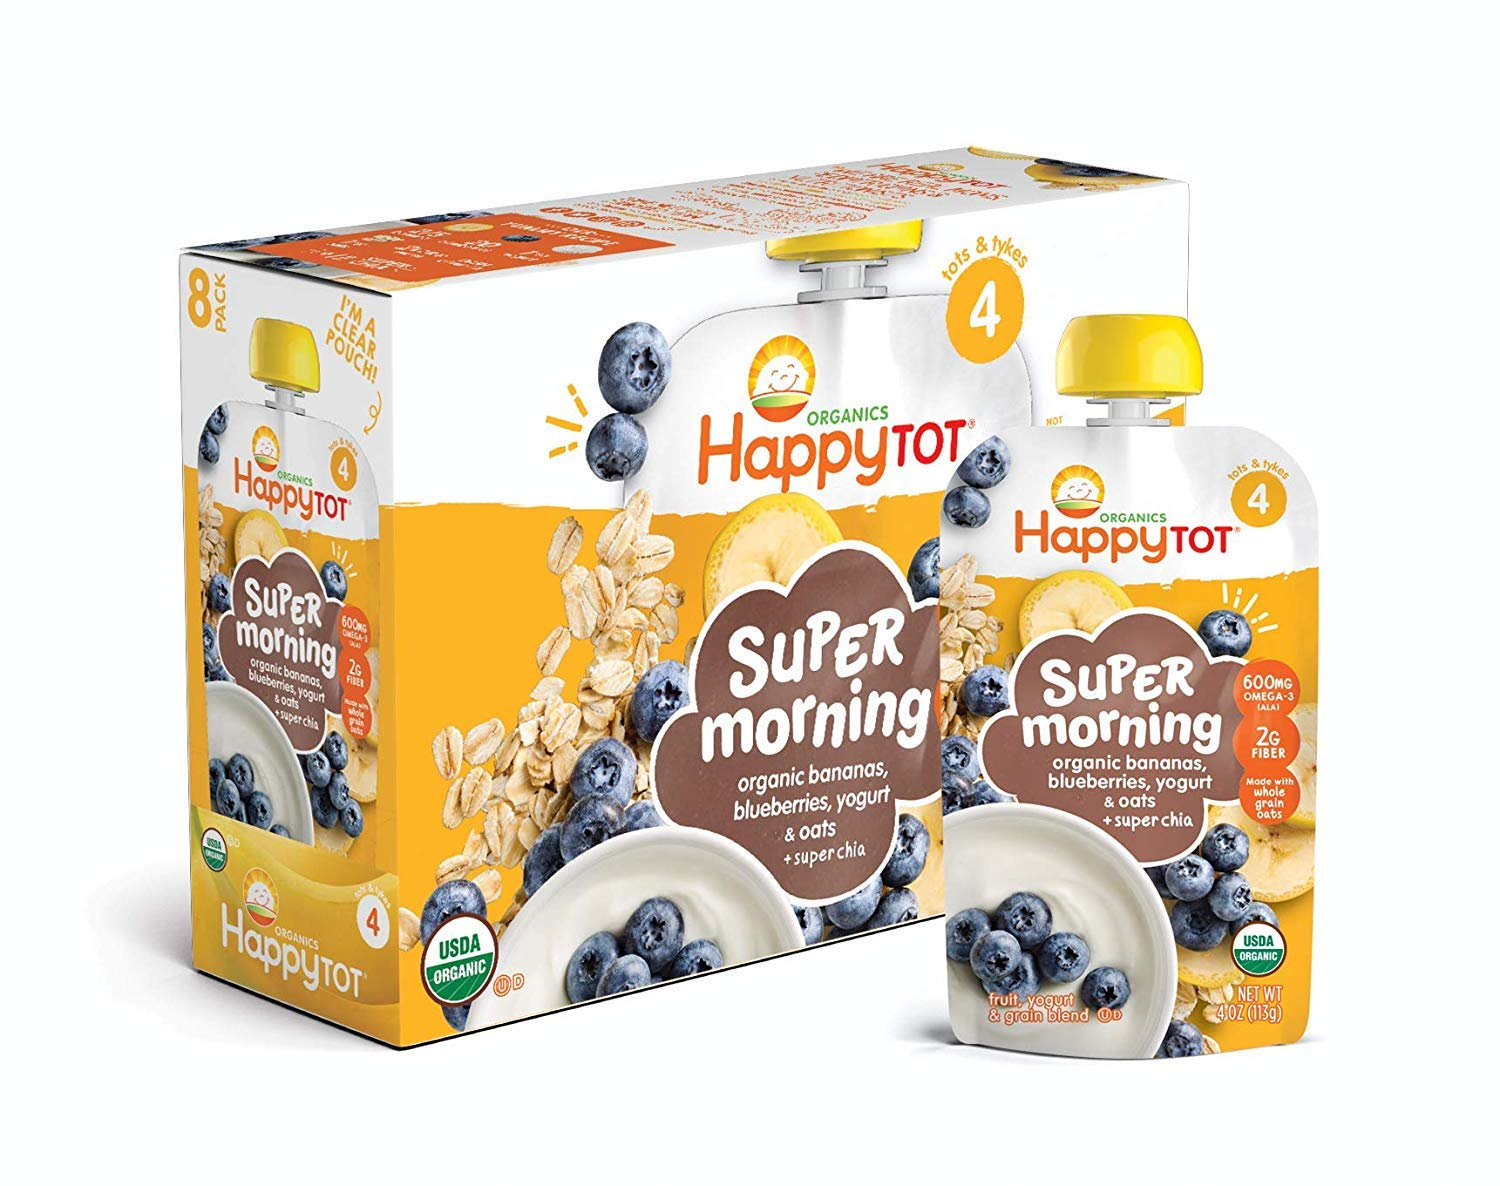 Happy Tot Organic Stage 4 Super Morning Organic Bananas Blueberries Yogurt & Oats + Super Chia, 4 Ounce Pouch (Pack of 15) (Packaging May Vary) (4.0 Ounce - Pack of 15)